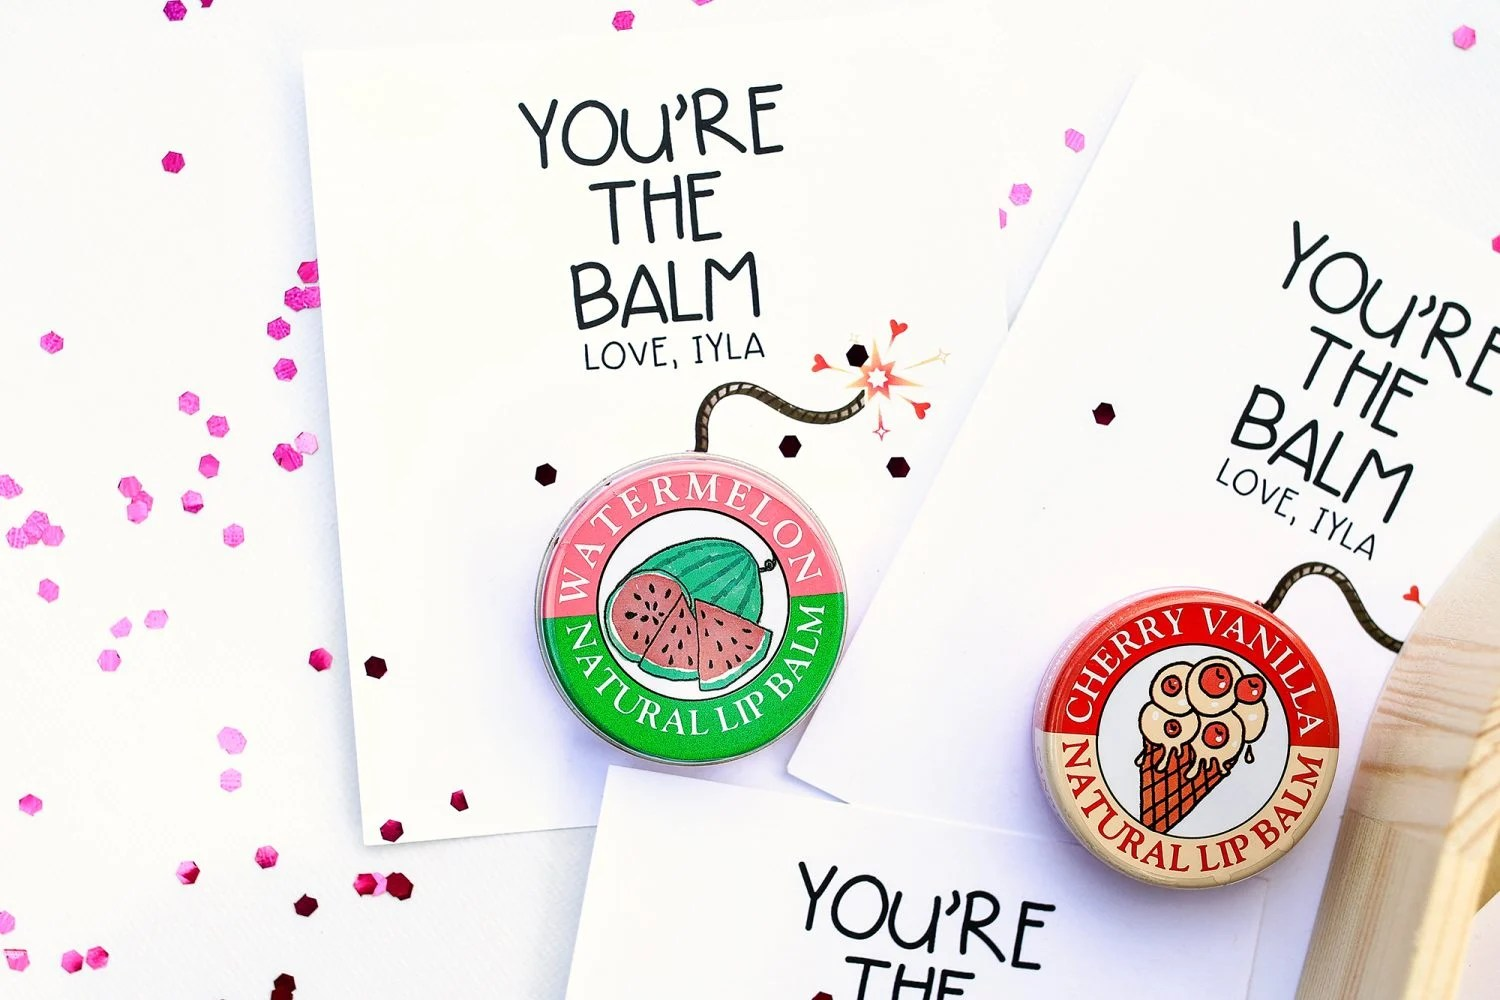 photo relating to You're the Balm Free Printable named Youre the Balm Valentine for Small children Furthermore Free of charge Printable - The